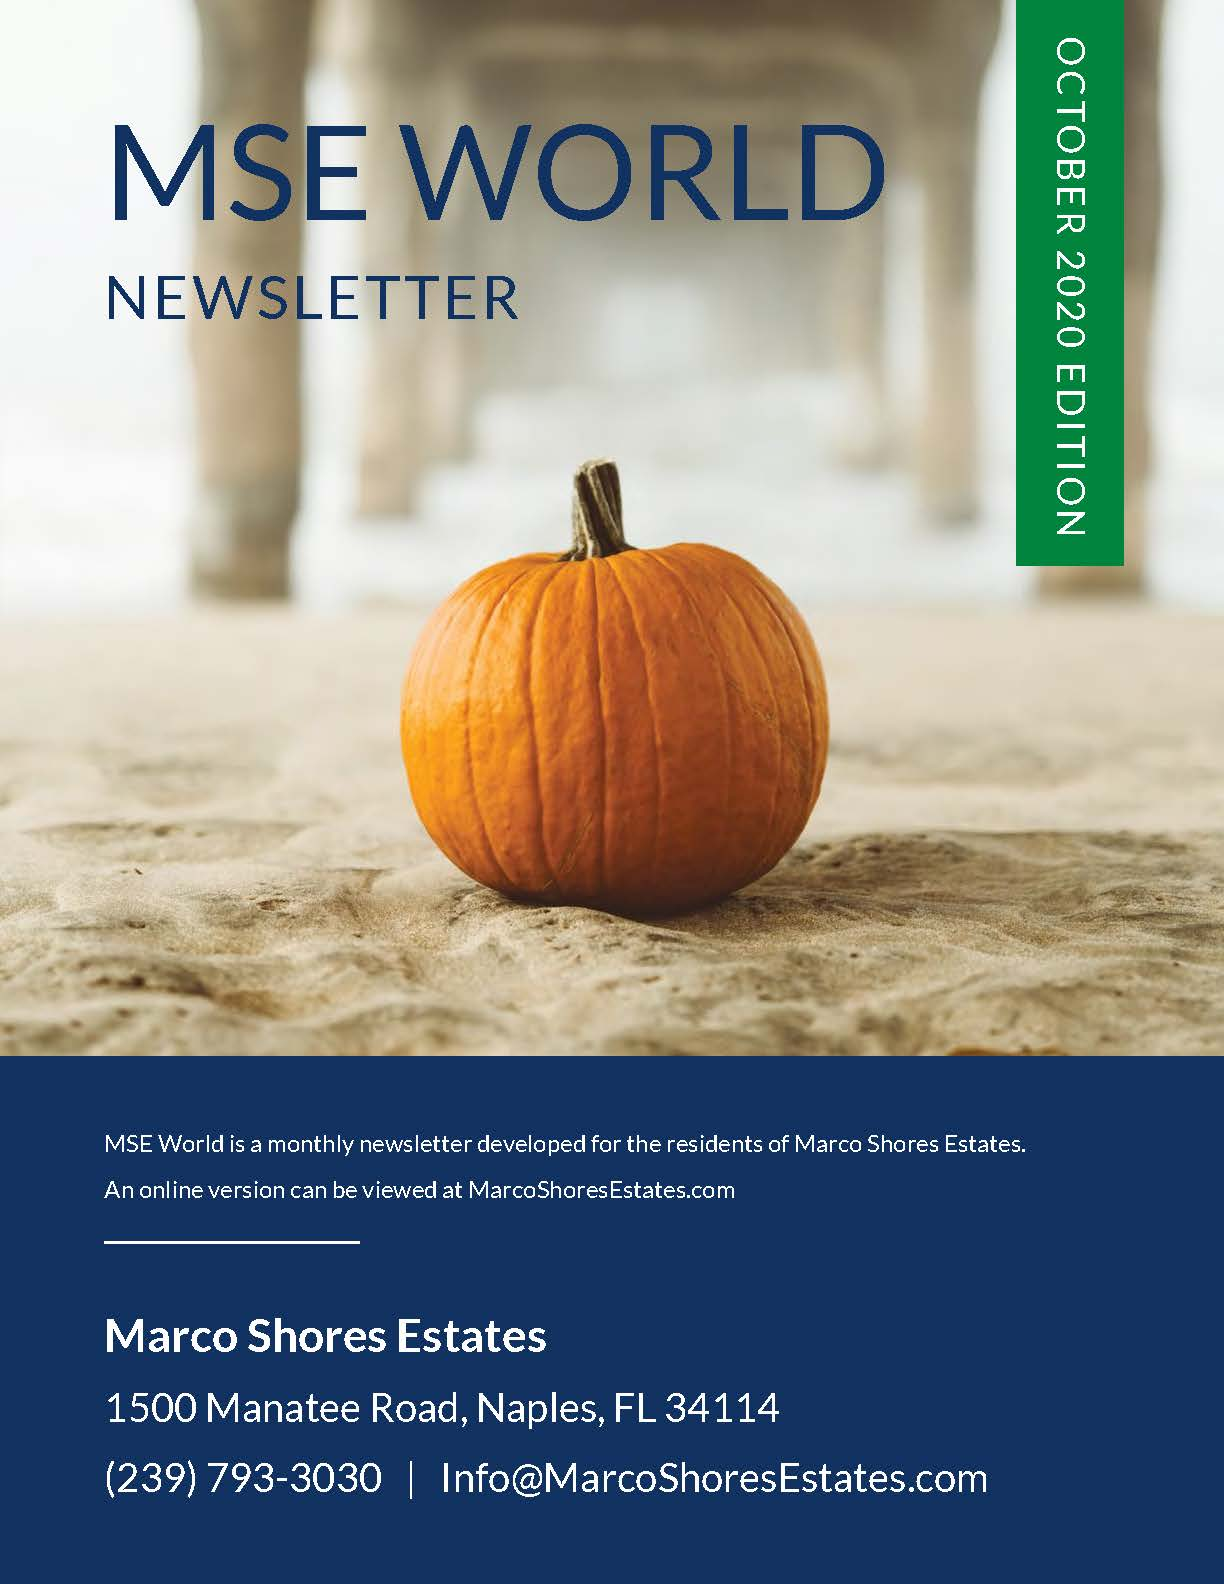 Marco Shores Estates - Active 55+ Community - MSE World October Edition